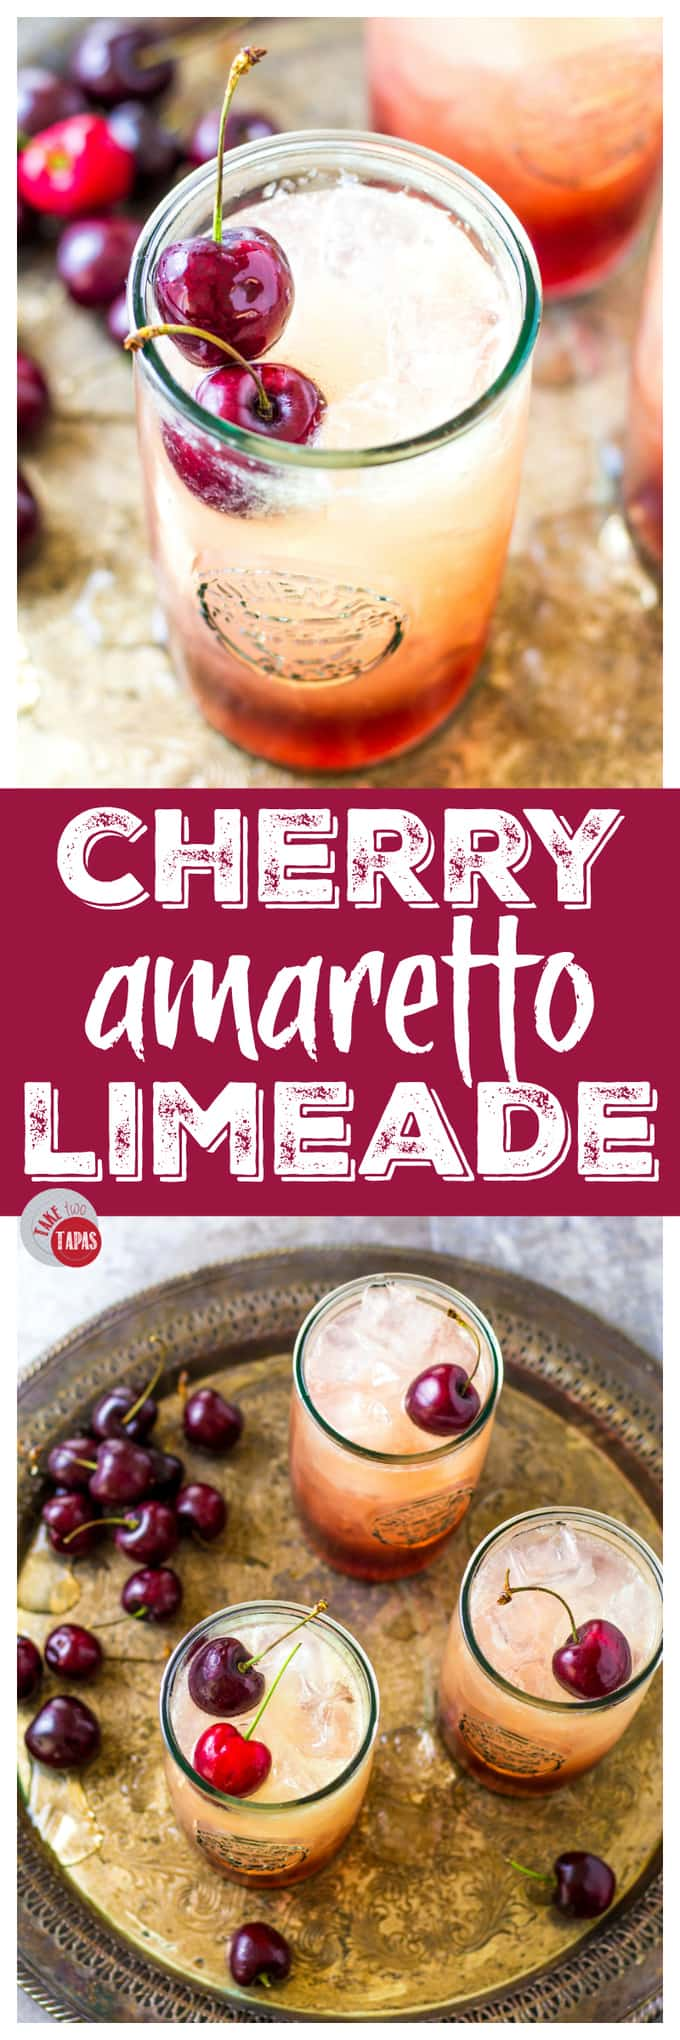 3 Ingredient Cherry Amaretto Limeade | Take Two Tapas | #CherryRecipe #Amaretto #Cocktails #Limeade #SummerCocktails #3IngredientCocktails